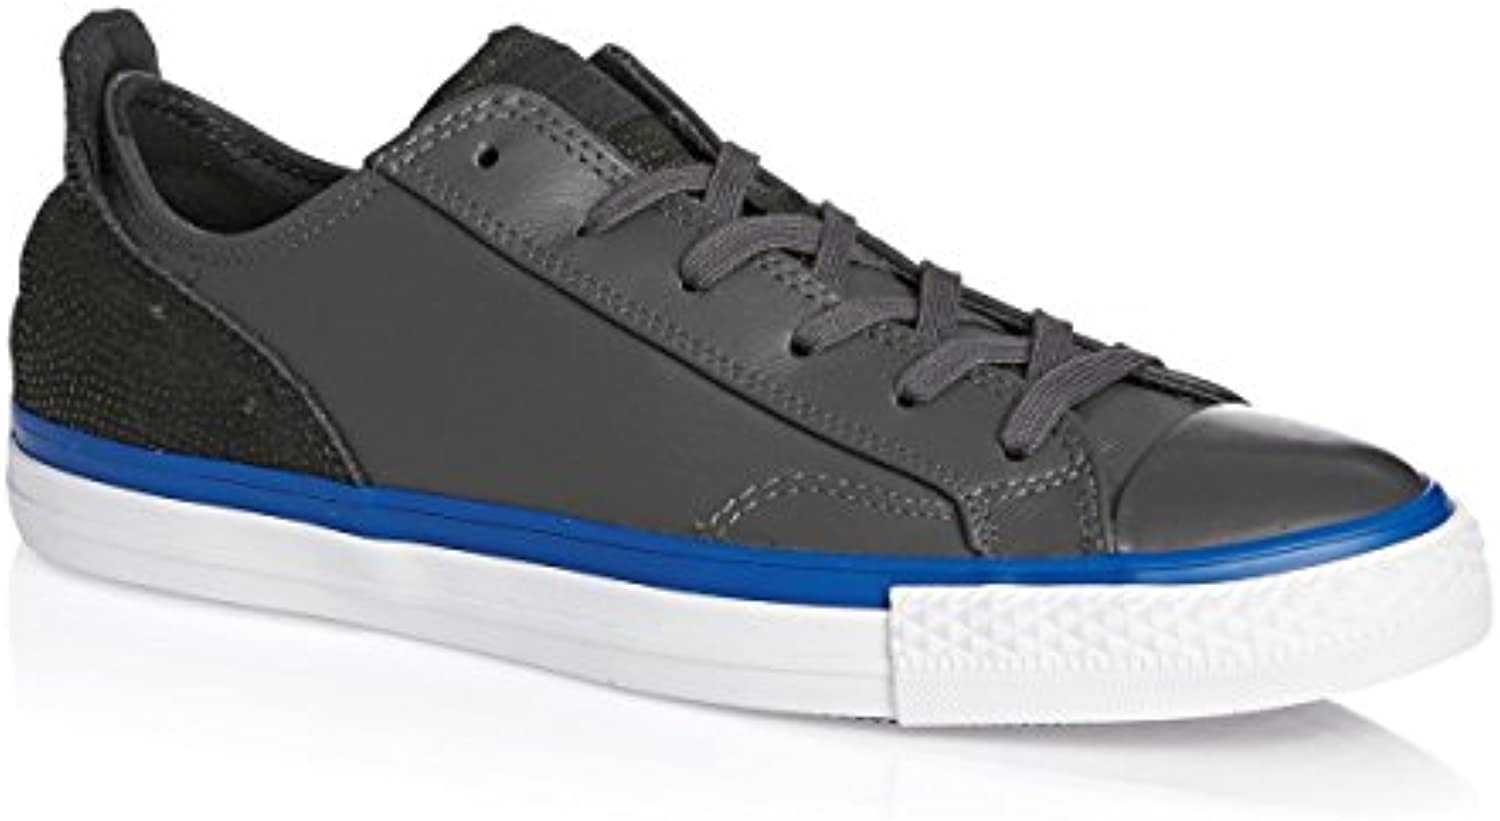 CONVERSE ALL STAR CHUCKS OX LEDER GRAU GREY SCHUHE 148644C GR:40